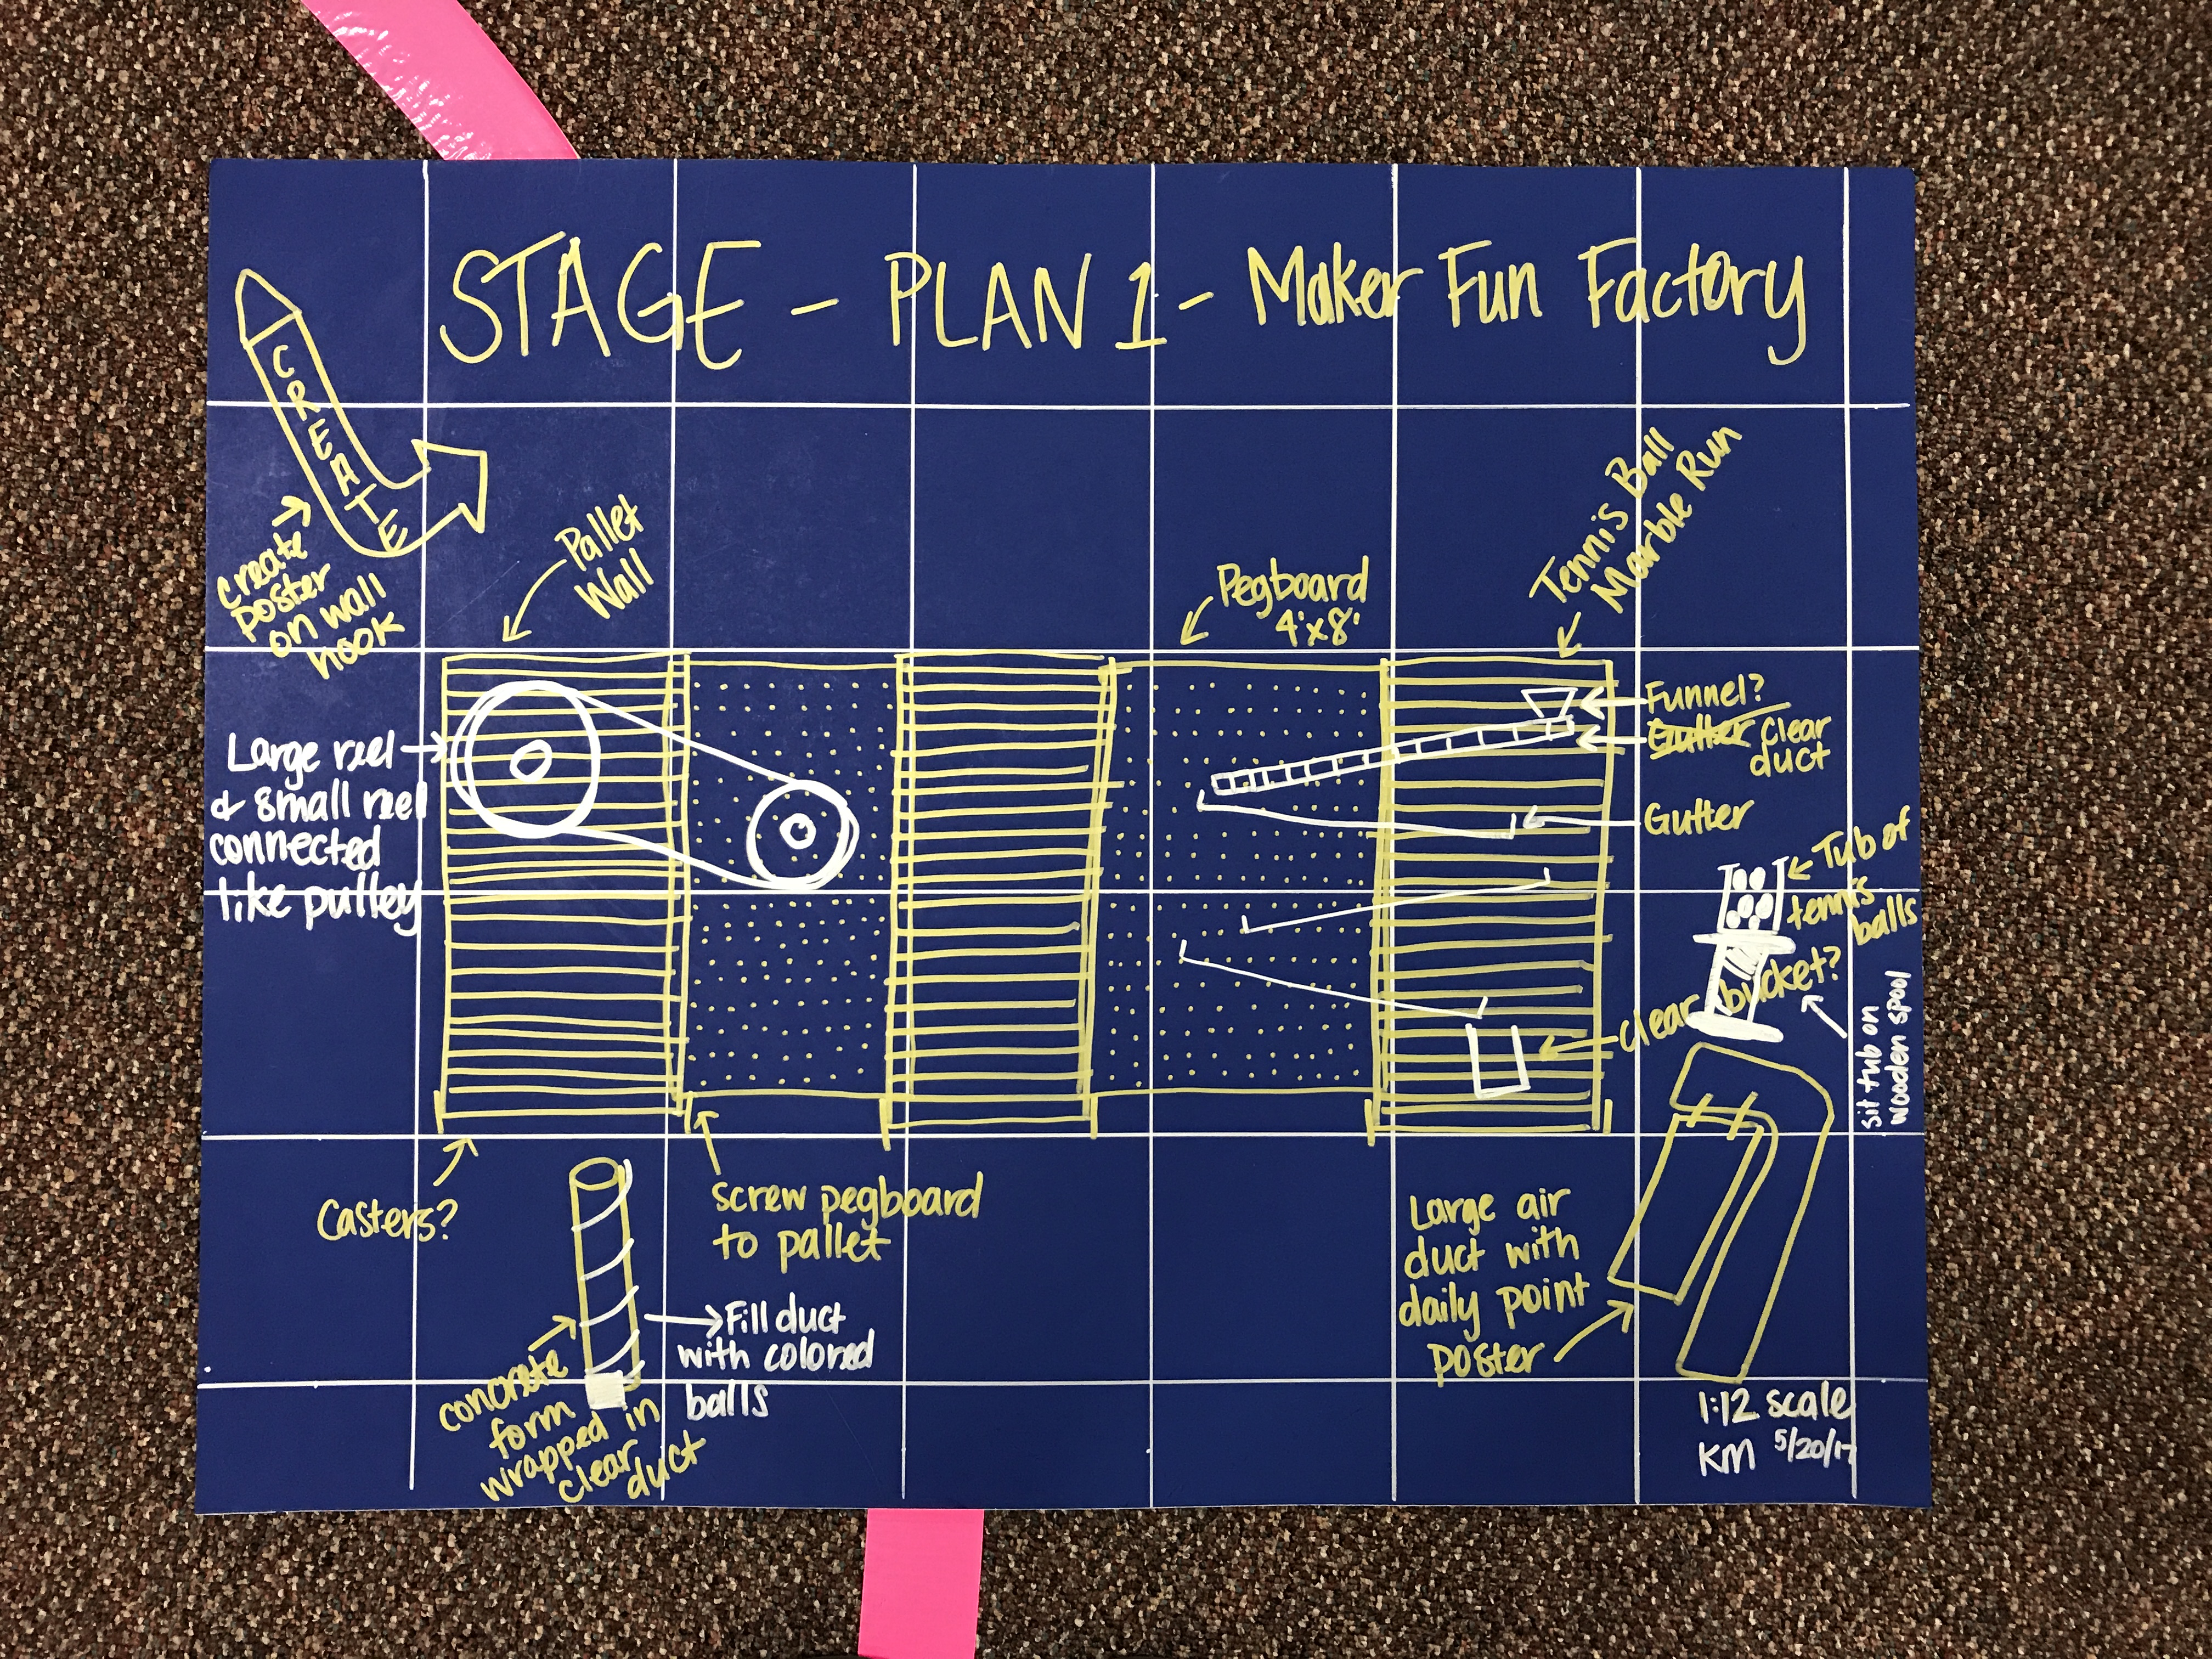 How to make blueprints for under 1 maker fun factory vbs i am thrilled with the maker fun factory curriculum especially considering our current culture and the uncertainty our kids often experience with malvernweather Image collections